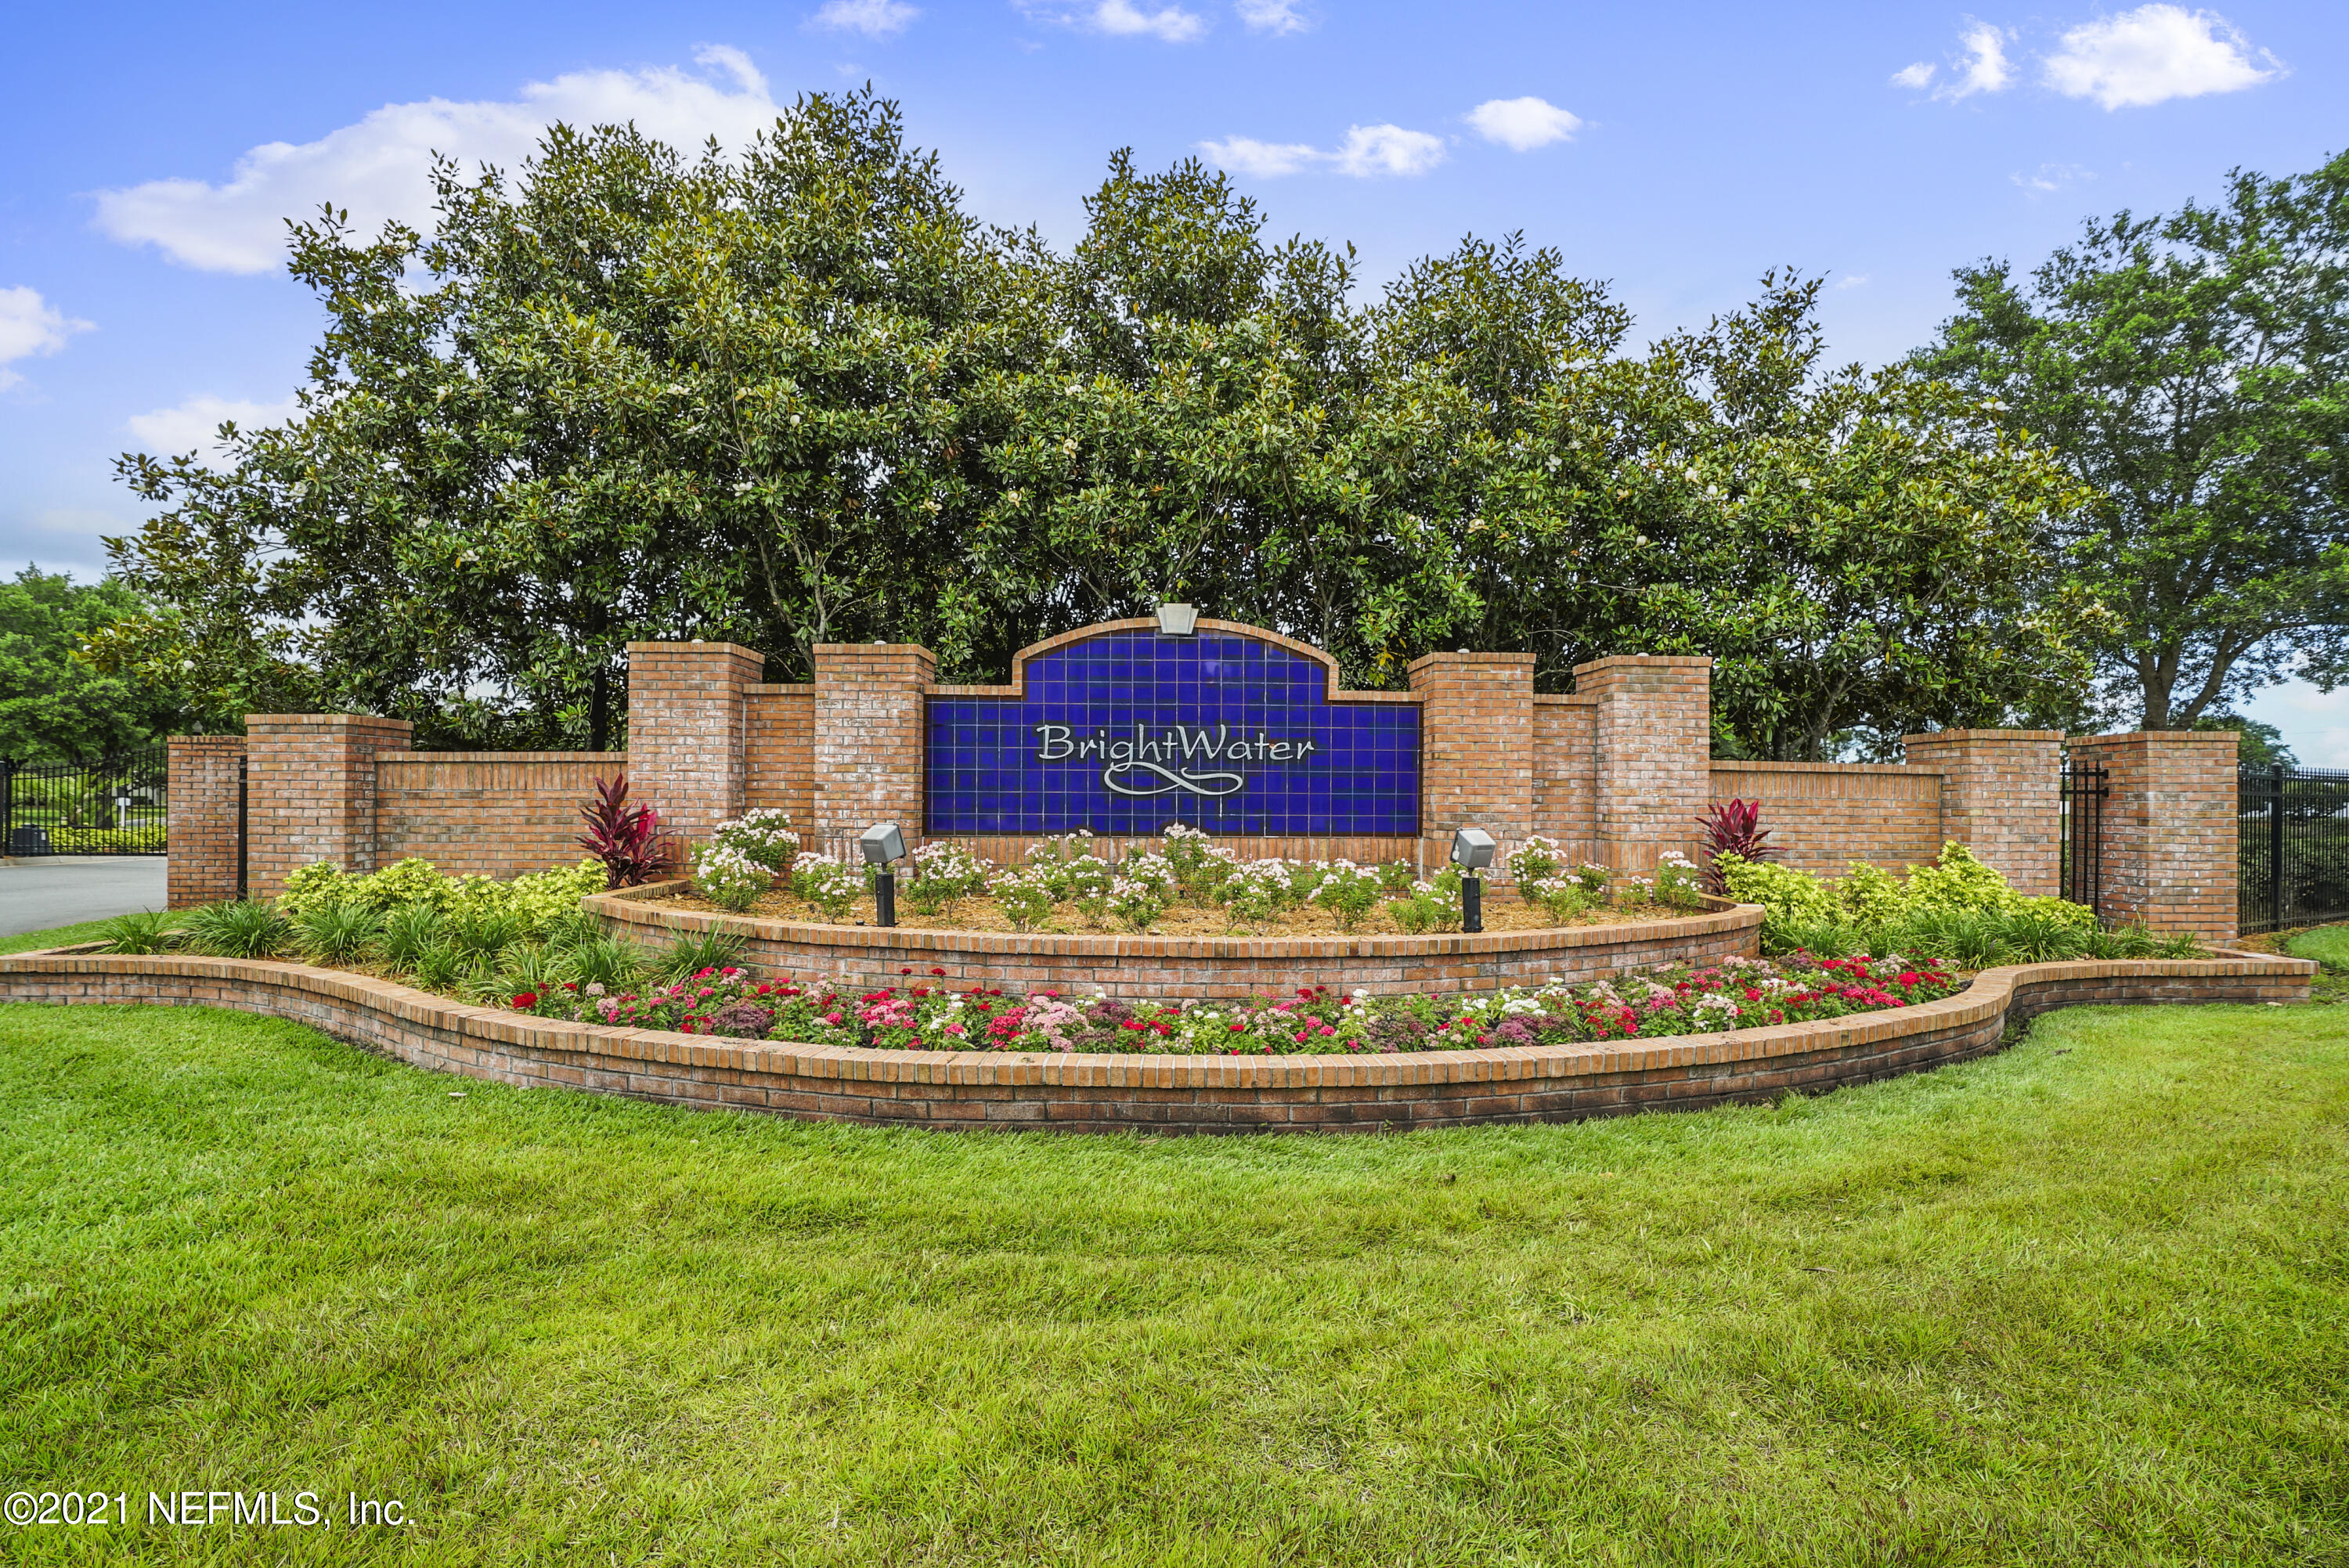 Welcome Home to this great property in the highly sought after, gated community of Brightwater. This townhome features a dynamic pond view, top of the line kitchen selections in cabinetry, counters and backsplash; updated lighting and fixtures throughout, hardwood laminate floors and desirable location near the amenities & pool. The open floor plan works well for entertaining with the downstairs living space & kitchen overlooking the screened lanai. You will enjoy the stackable sliding doors that open up completely making the lanai feel like an extension of the living space. The 3 upstairs BR's are split making it a perfect set up for company or a roommate. This gated community is in an excellent location close to the St Johns Town Center, shopping, restaurants and interstate access.